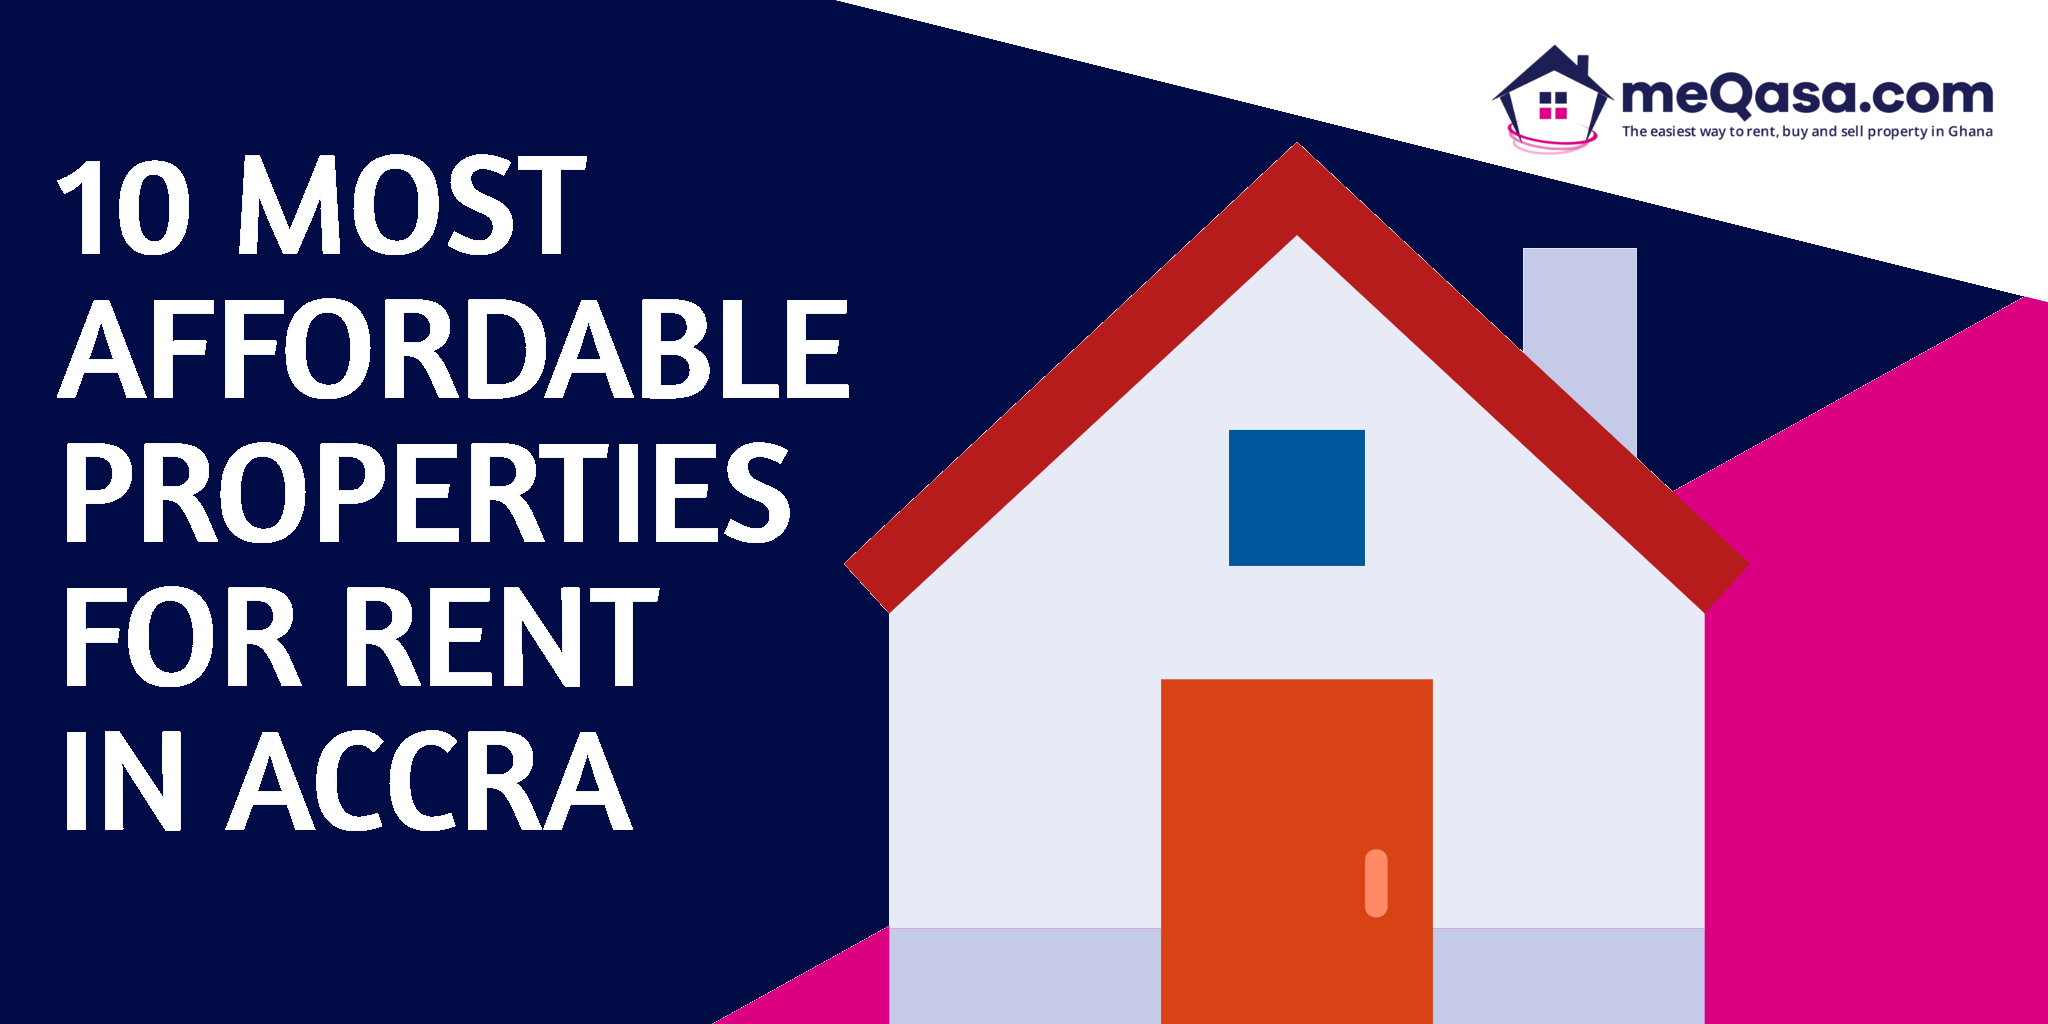 10 Affordable Properteis for Rent in Accra on meQasa.com